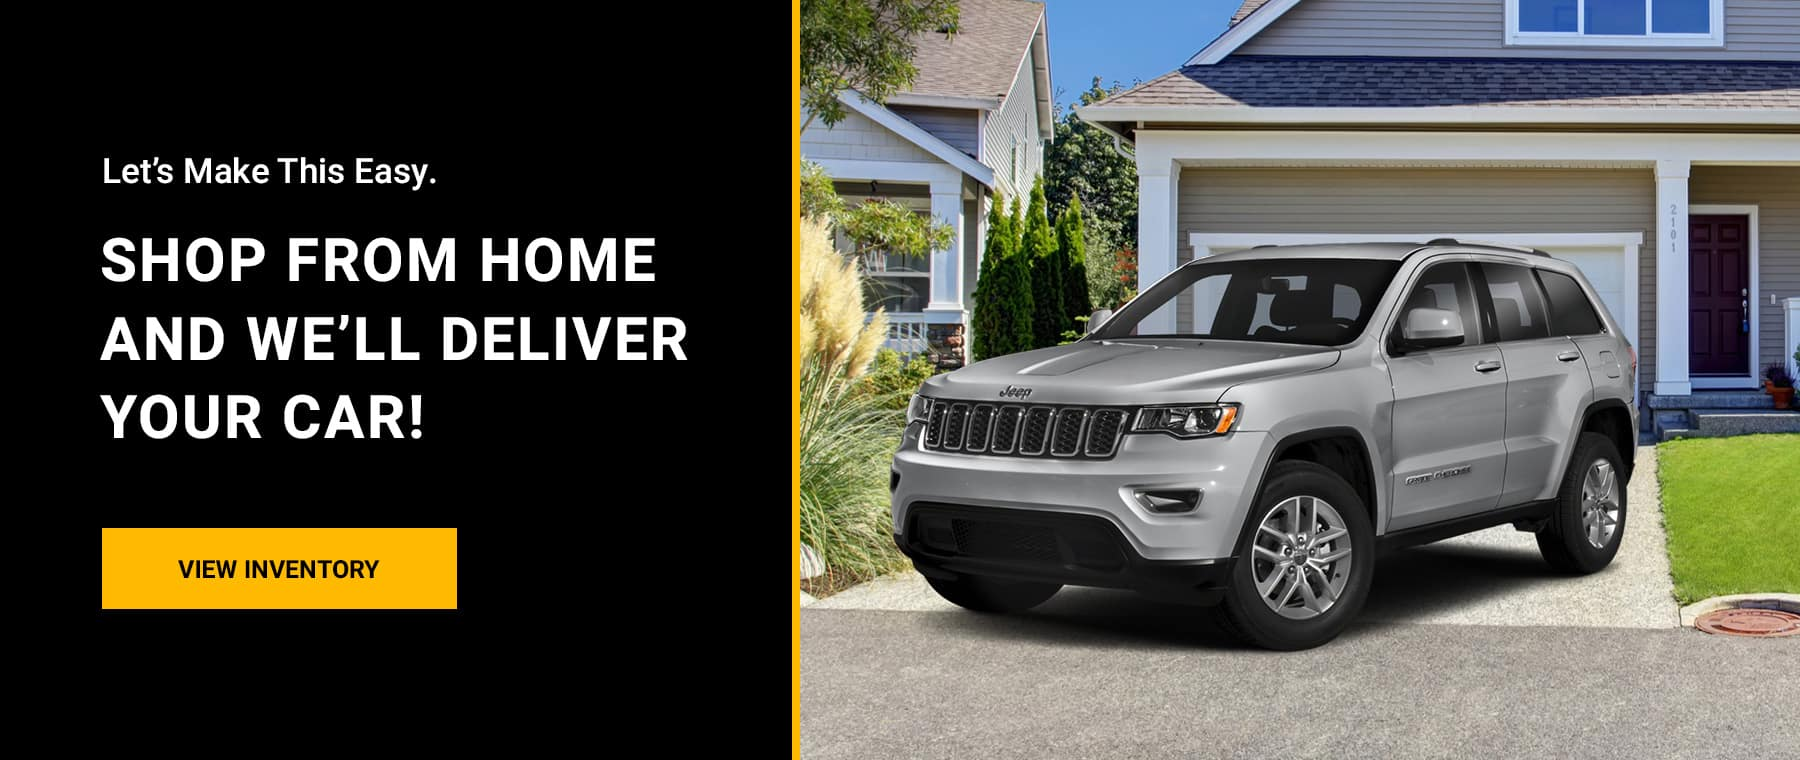 Shop from home and we'll deliver your car!